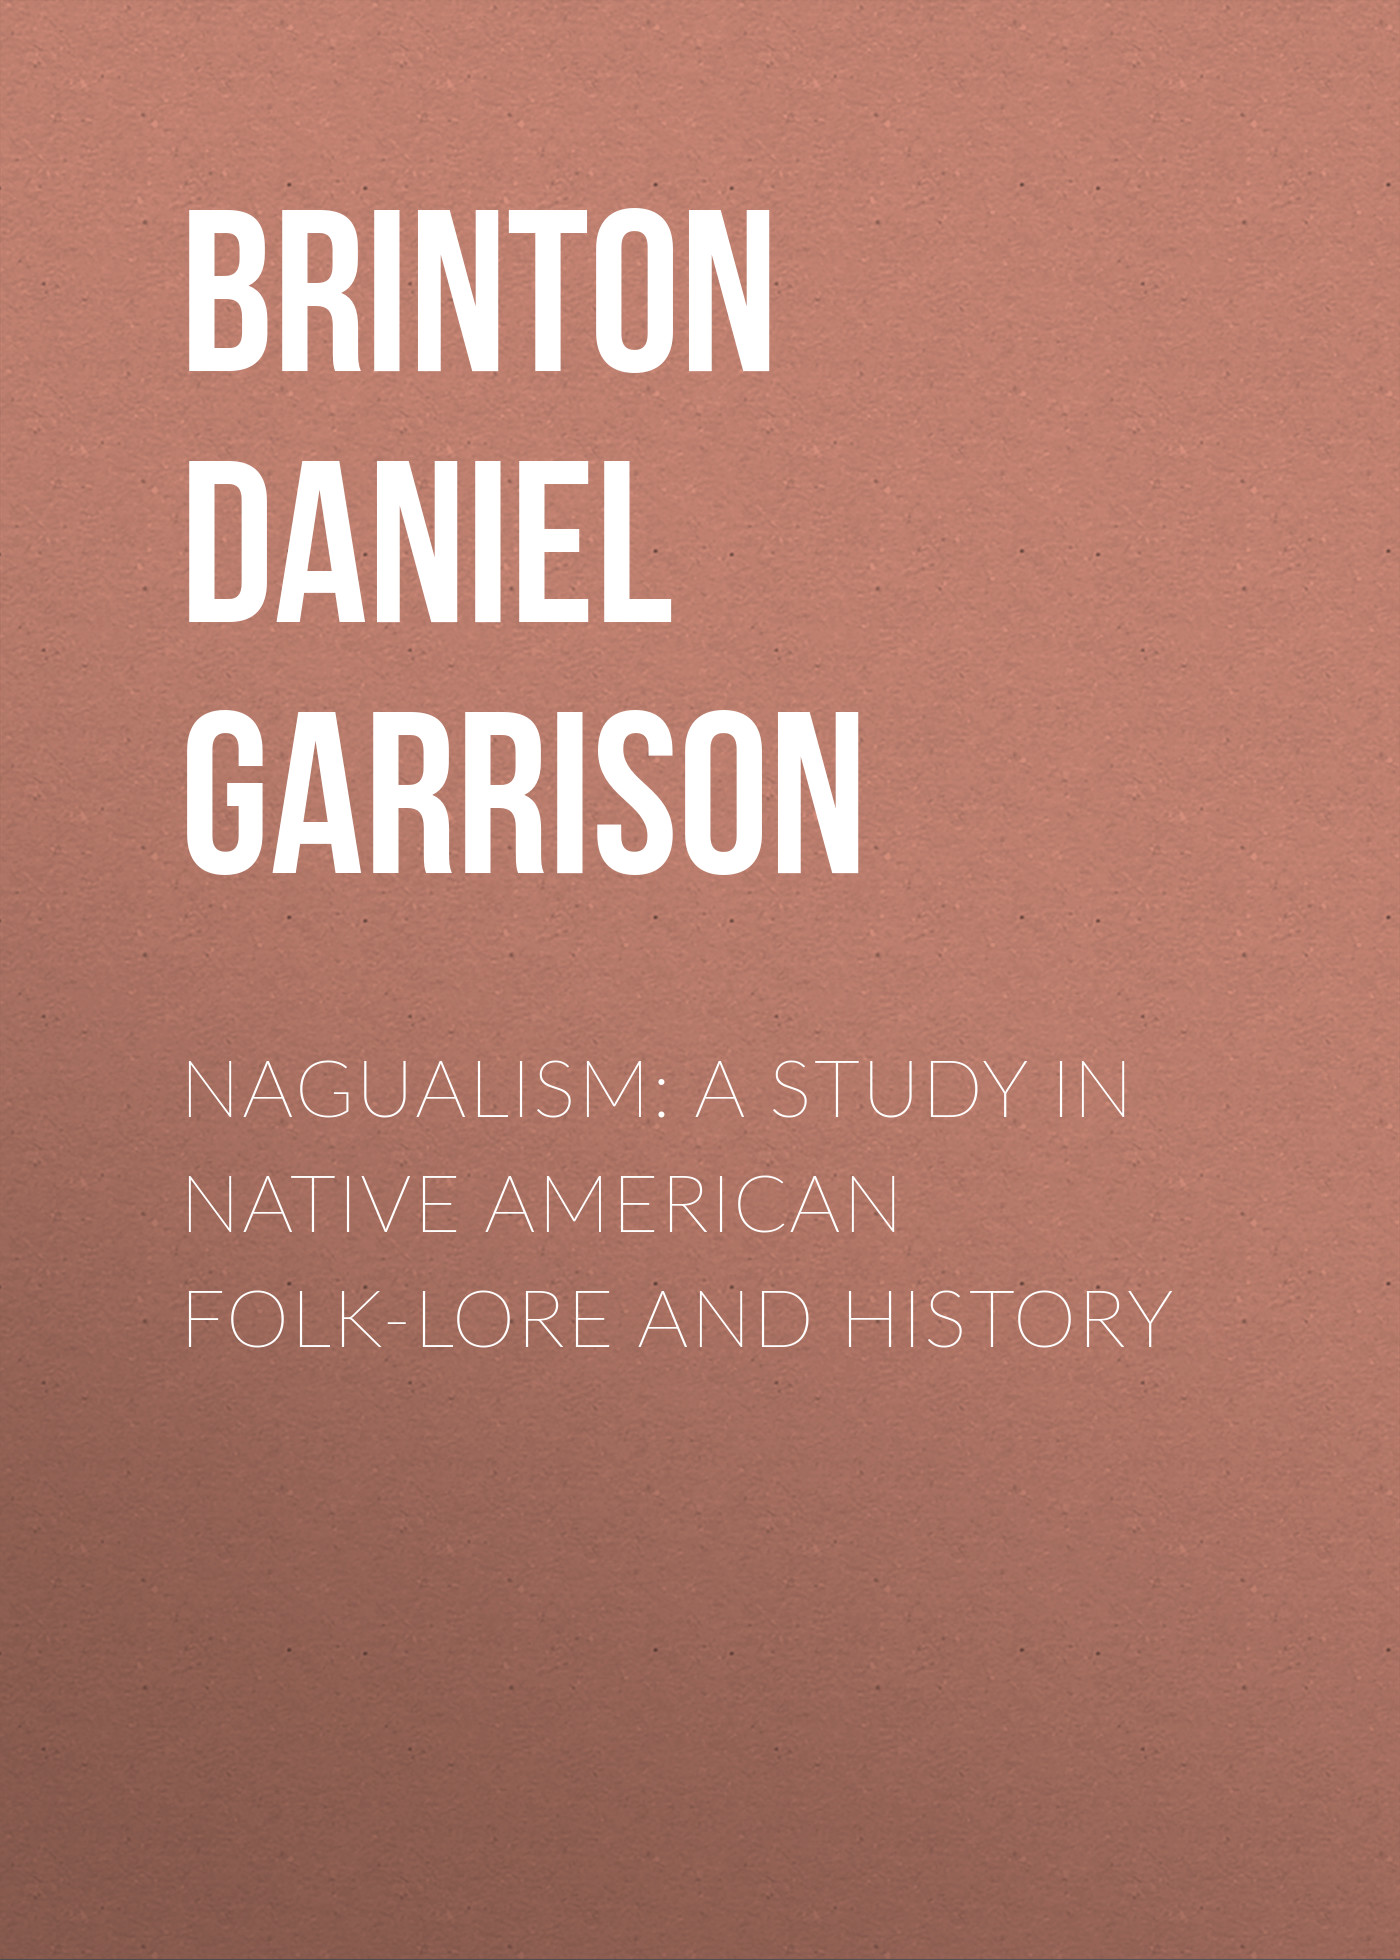 Brinton Daniel Garrison Nagualism: A Study in Native American Folk-lore and History баффи санти мари buffy sainte marie native north american child an odyssey